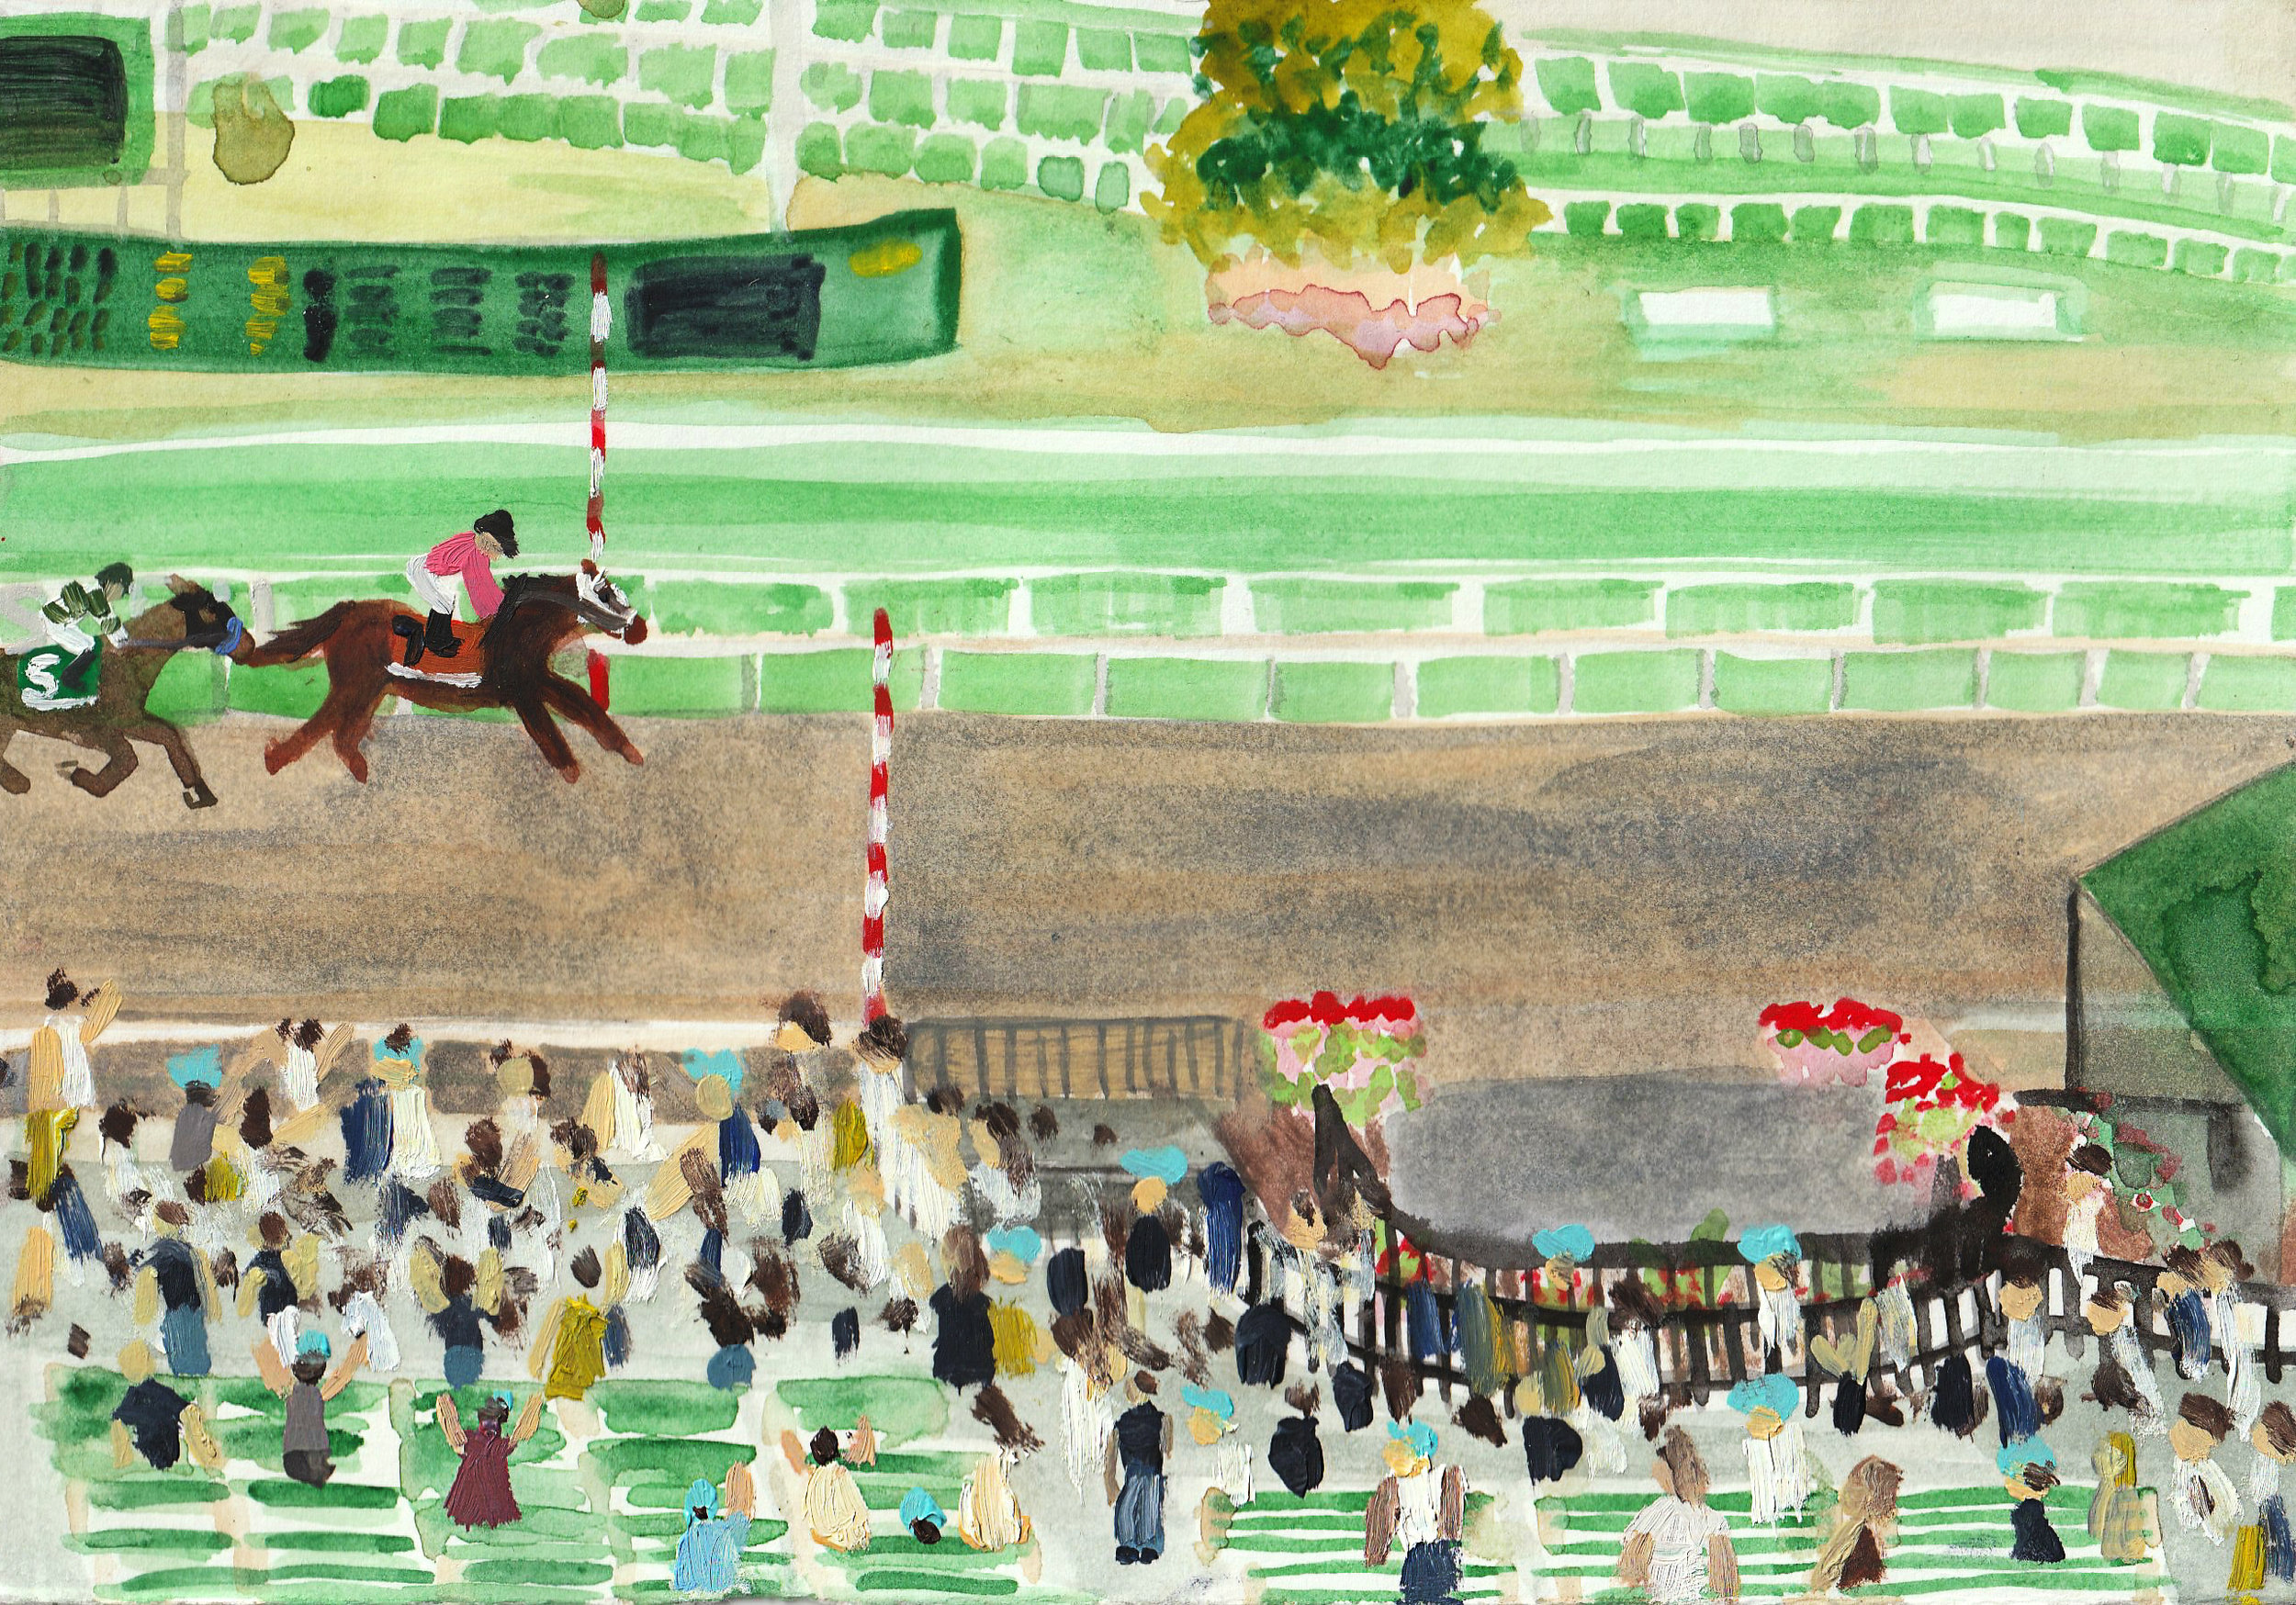 secretariat-painting-katrina-eugenia-oil-painting-painter-monmouth-park-racetrack-monmouth-racetrack-maximum-security-haskell-2019-thoroughbred-racing-racehorse-painting-race-horse-painting12.jpg